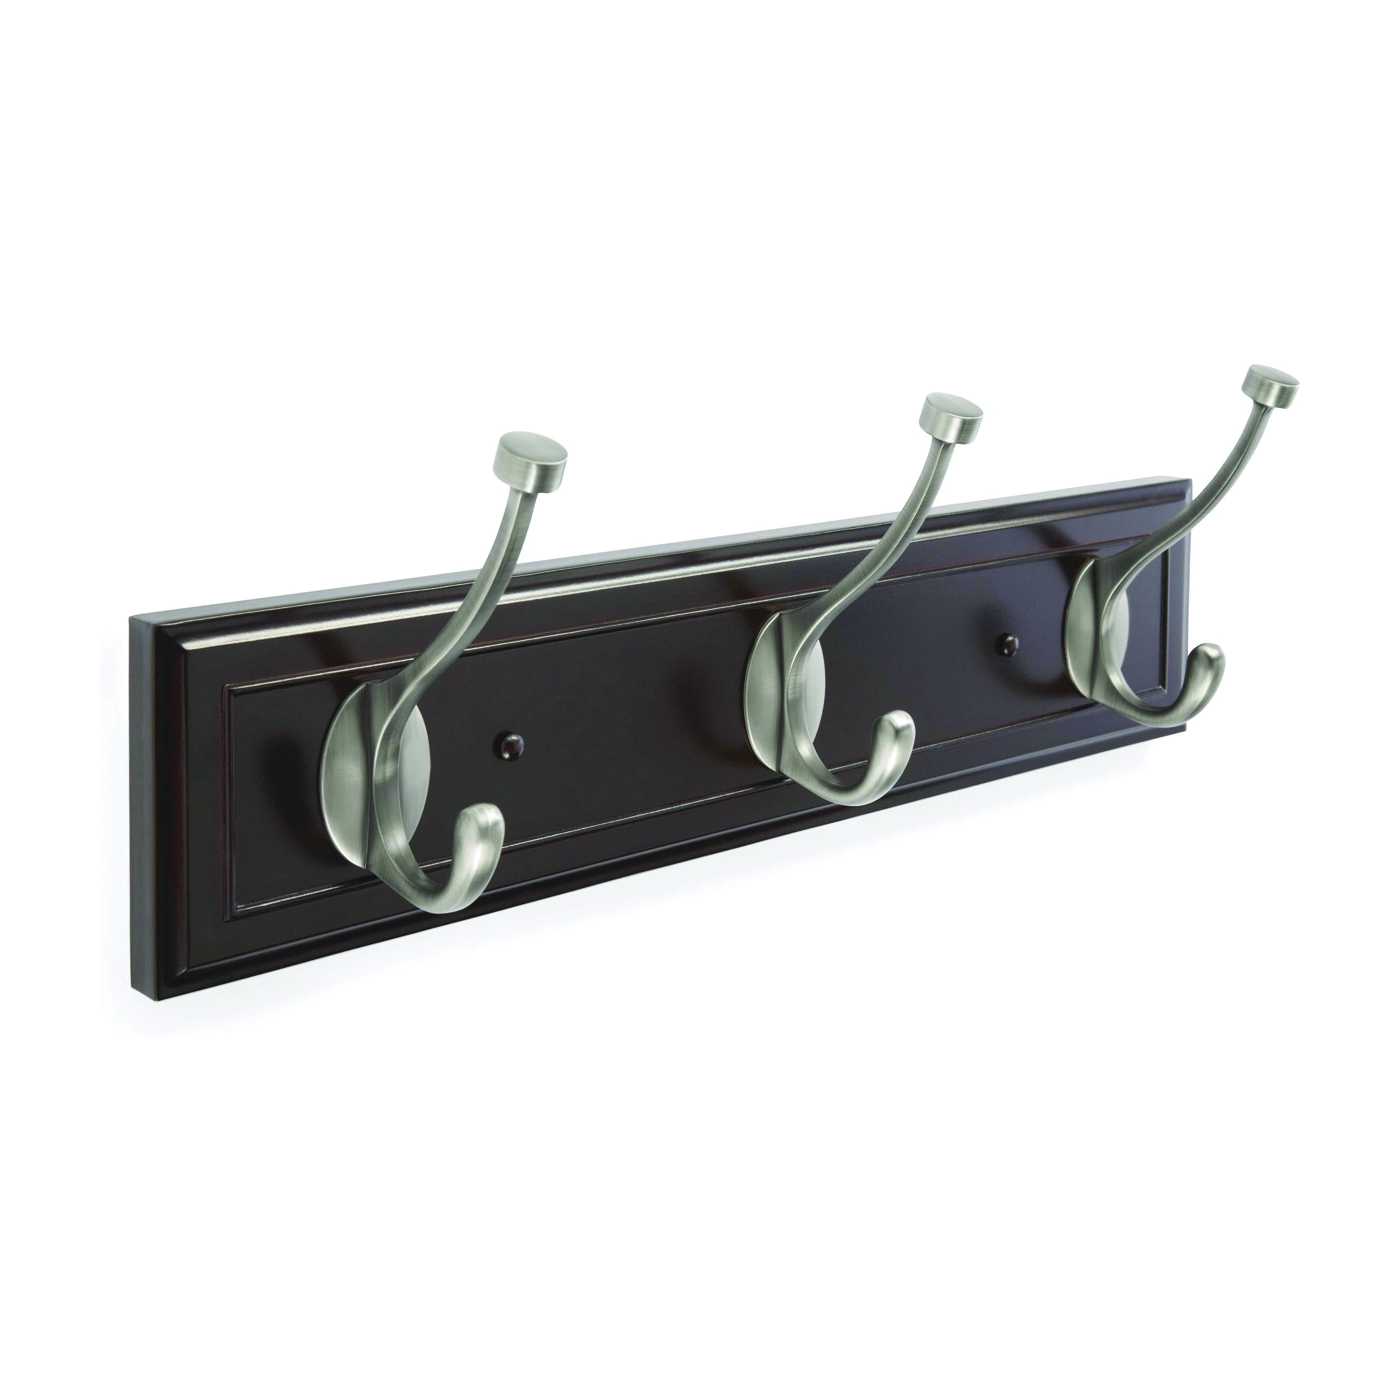 Picture of Amerock 2000330 Hook Rack, 3-Hook, MDF/Zinc, Oil-Rubbed Bronze